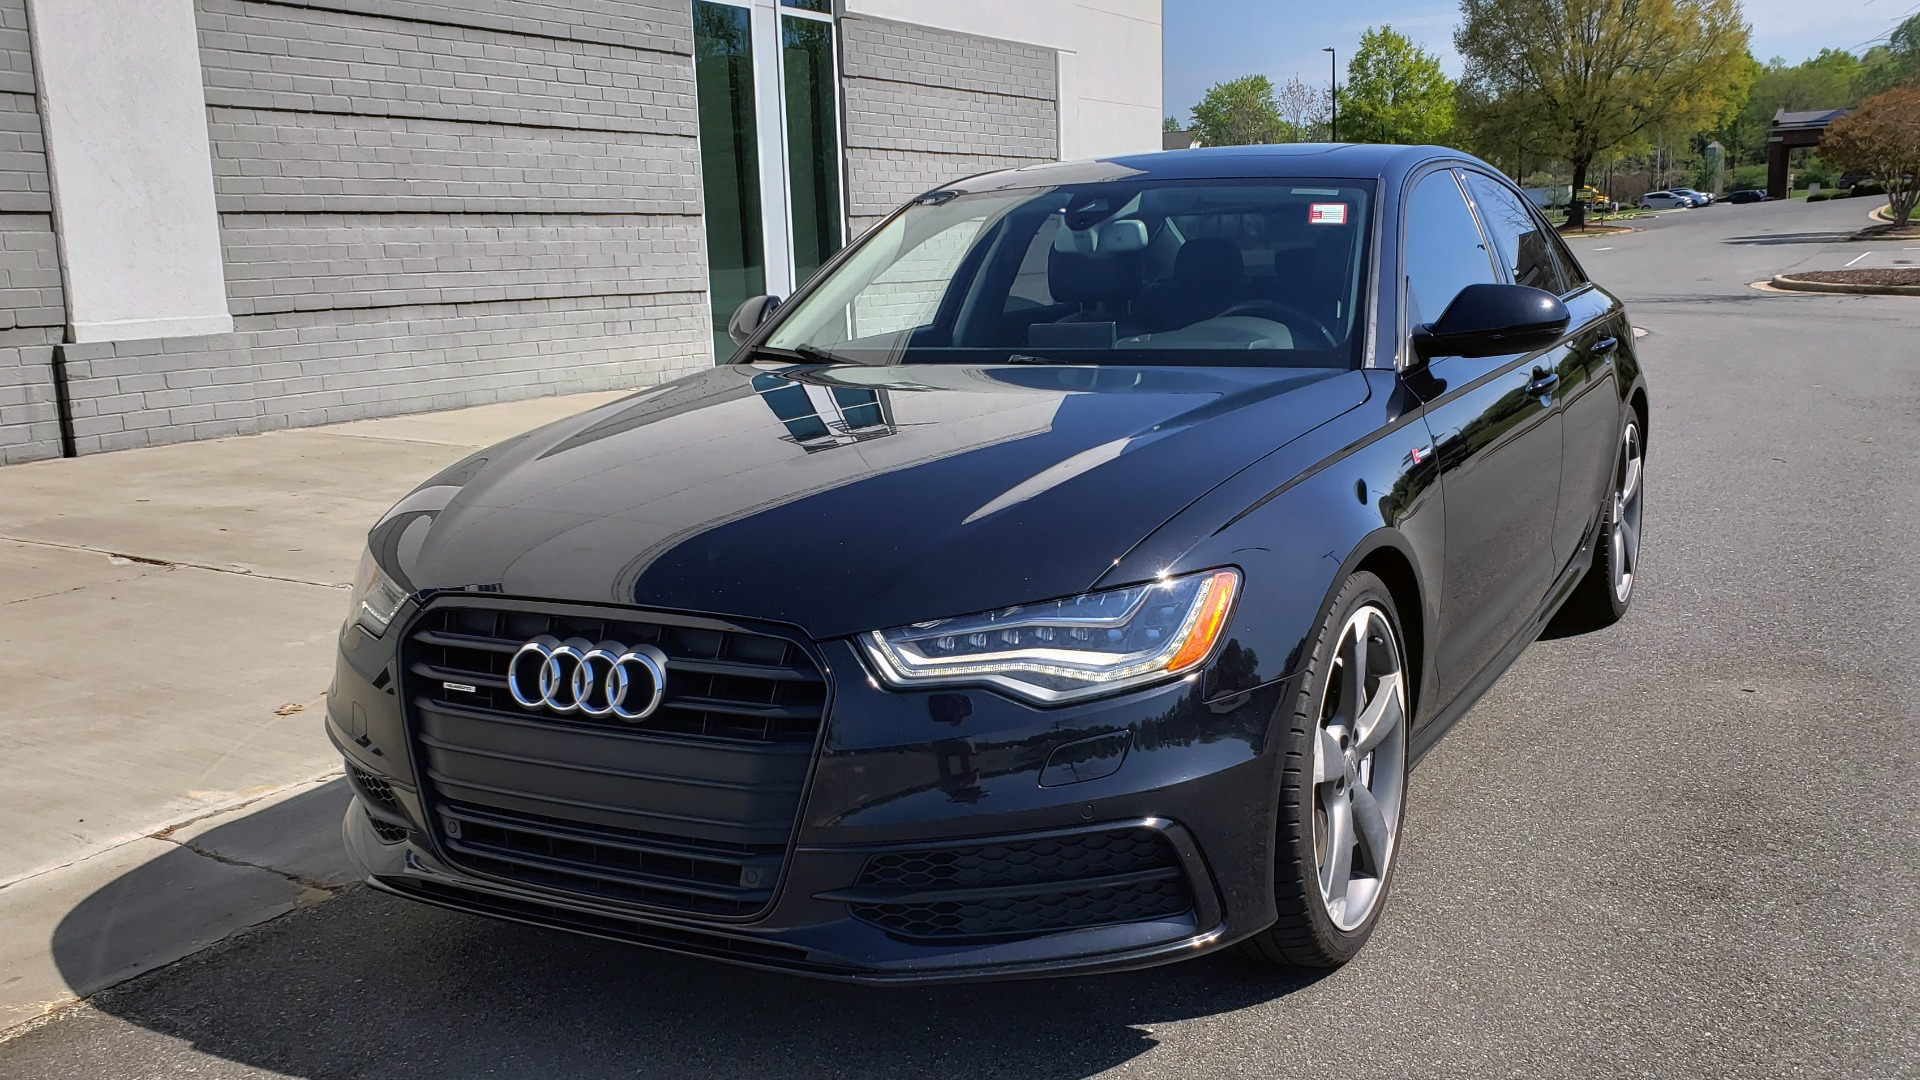 Used 2015 Audi A6 3.0T PRESTIGE / BLACK OPTIC / CLD WTHR / BOSE / HUD / SUNROOF for sale Sold at Formula Imports in Charlotte NC 28227 2